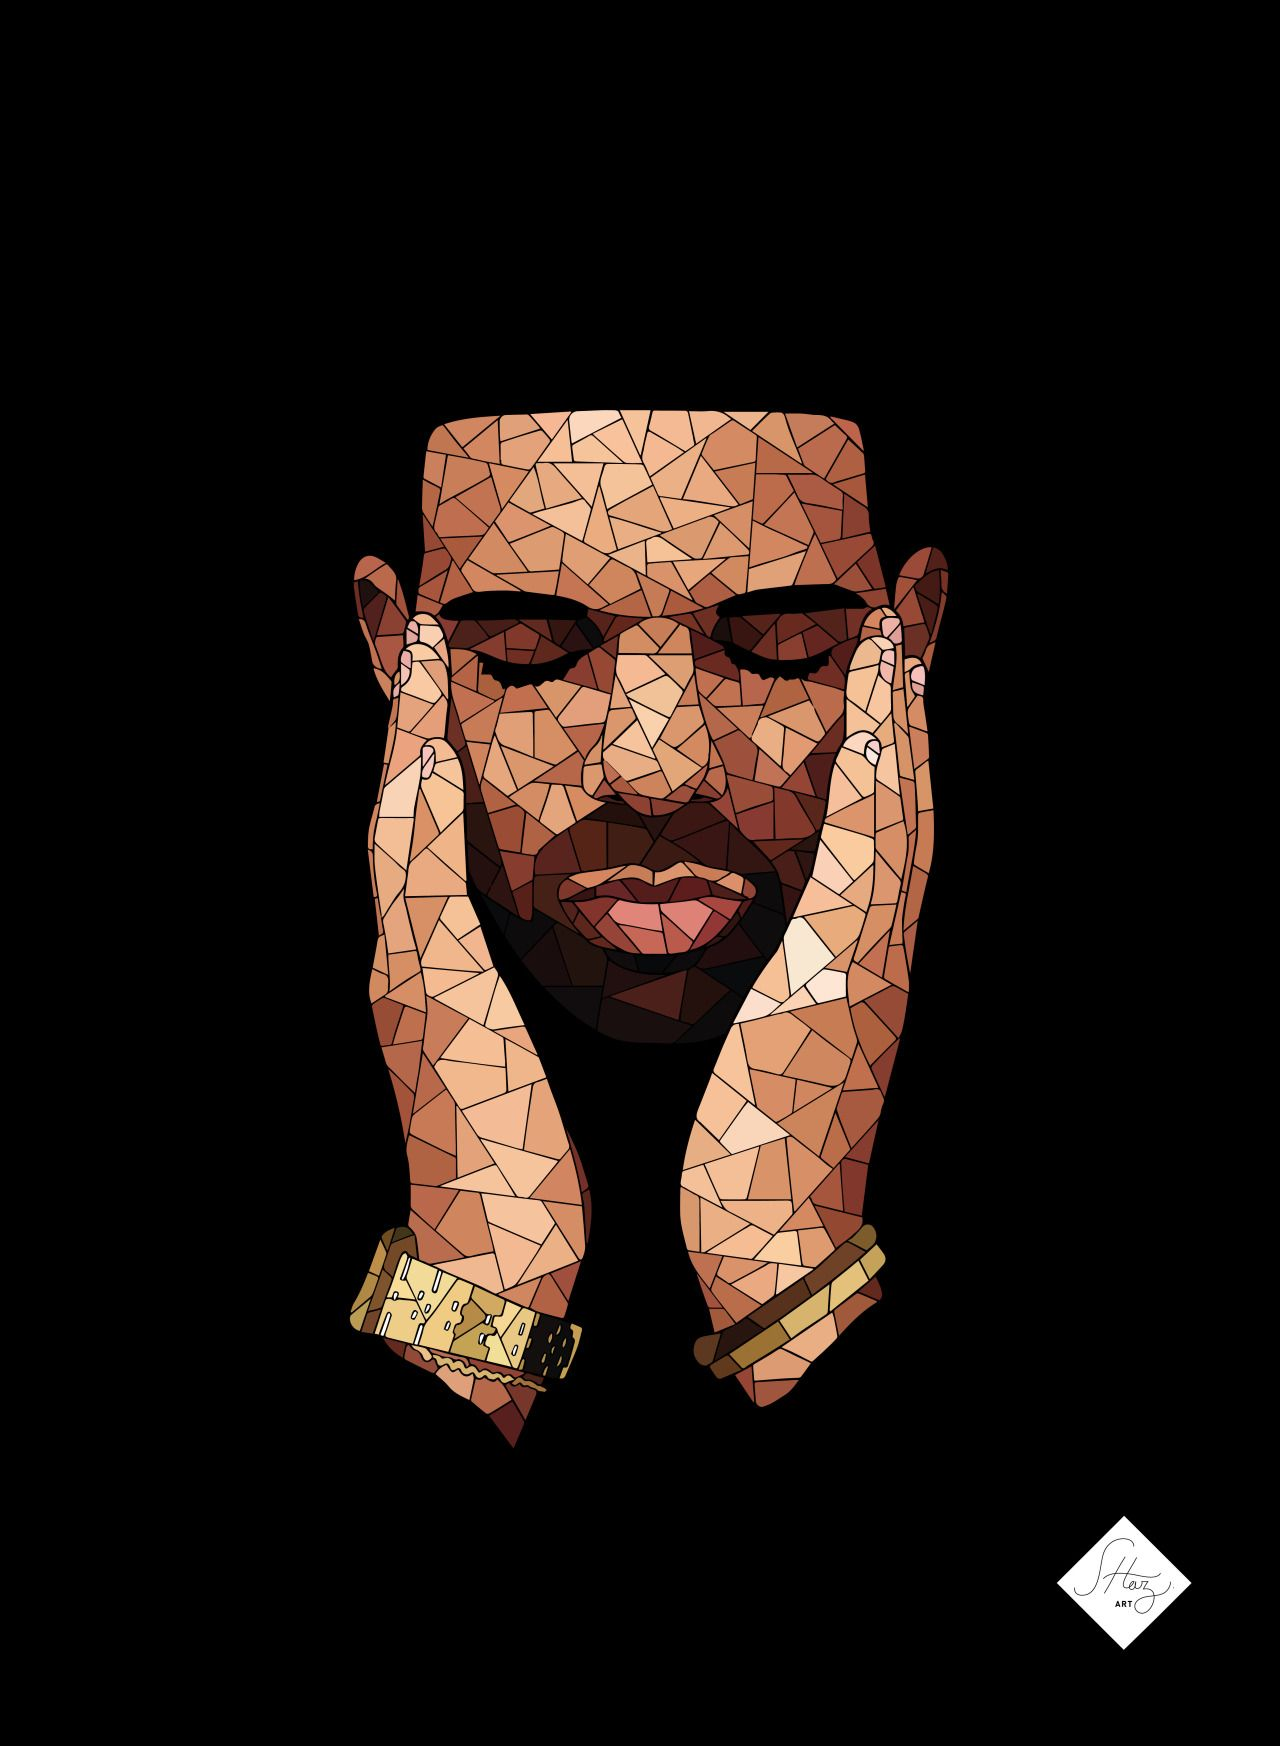 SHAZ Art Photo Drake Rapper Wallpapers